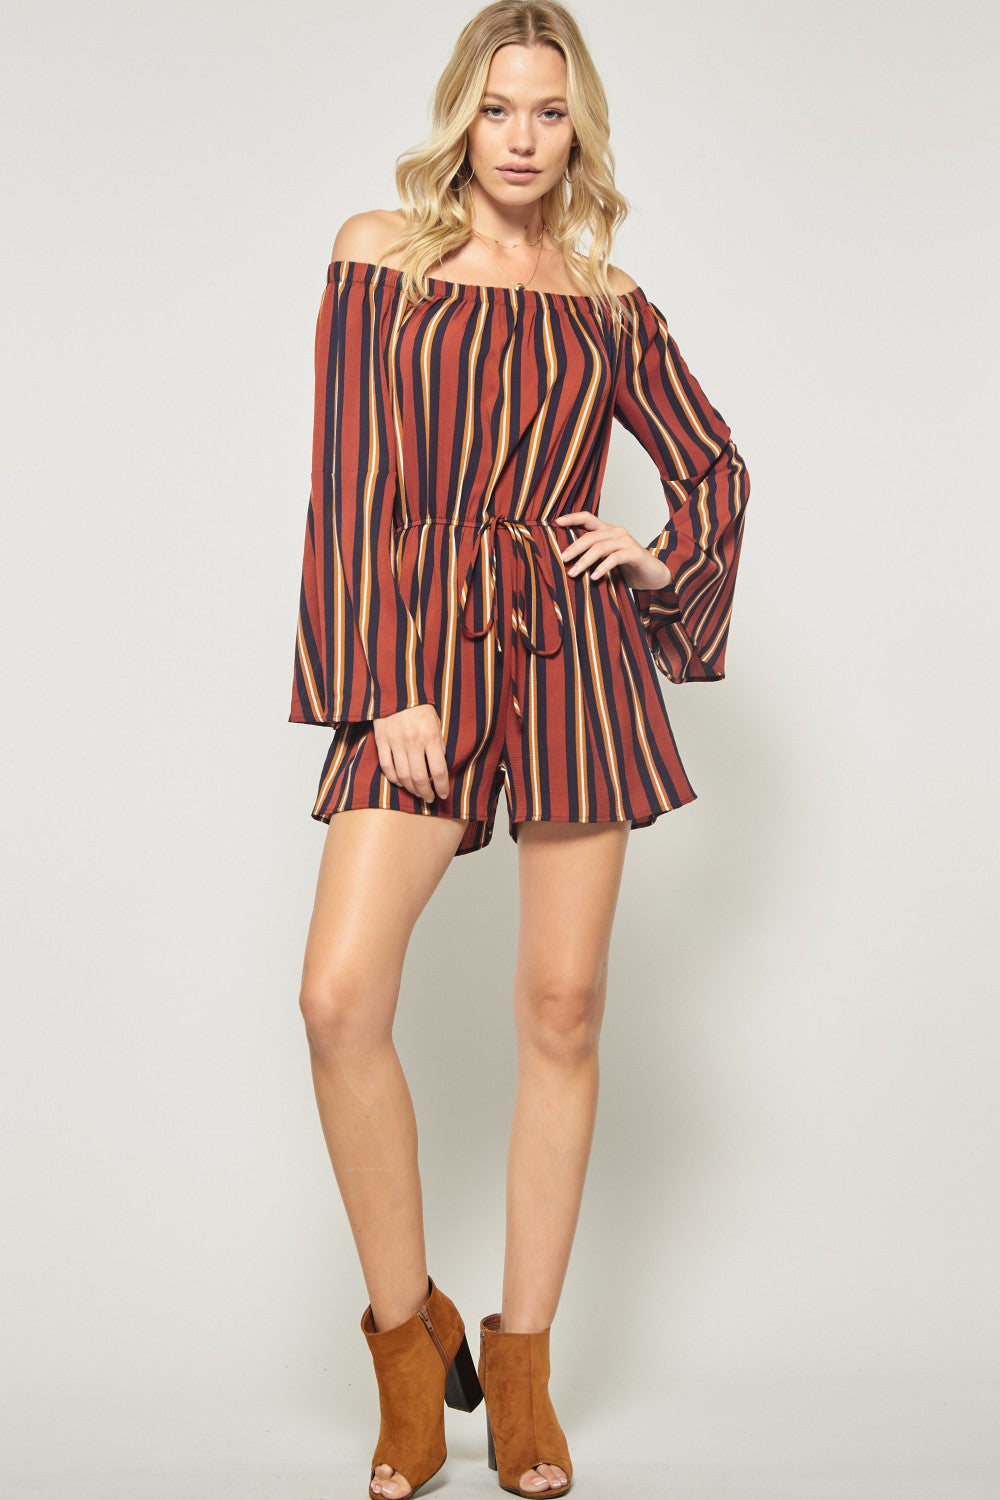 Striped Long Sleeve Romper in Burnt Orange